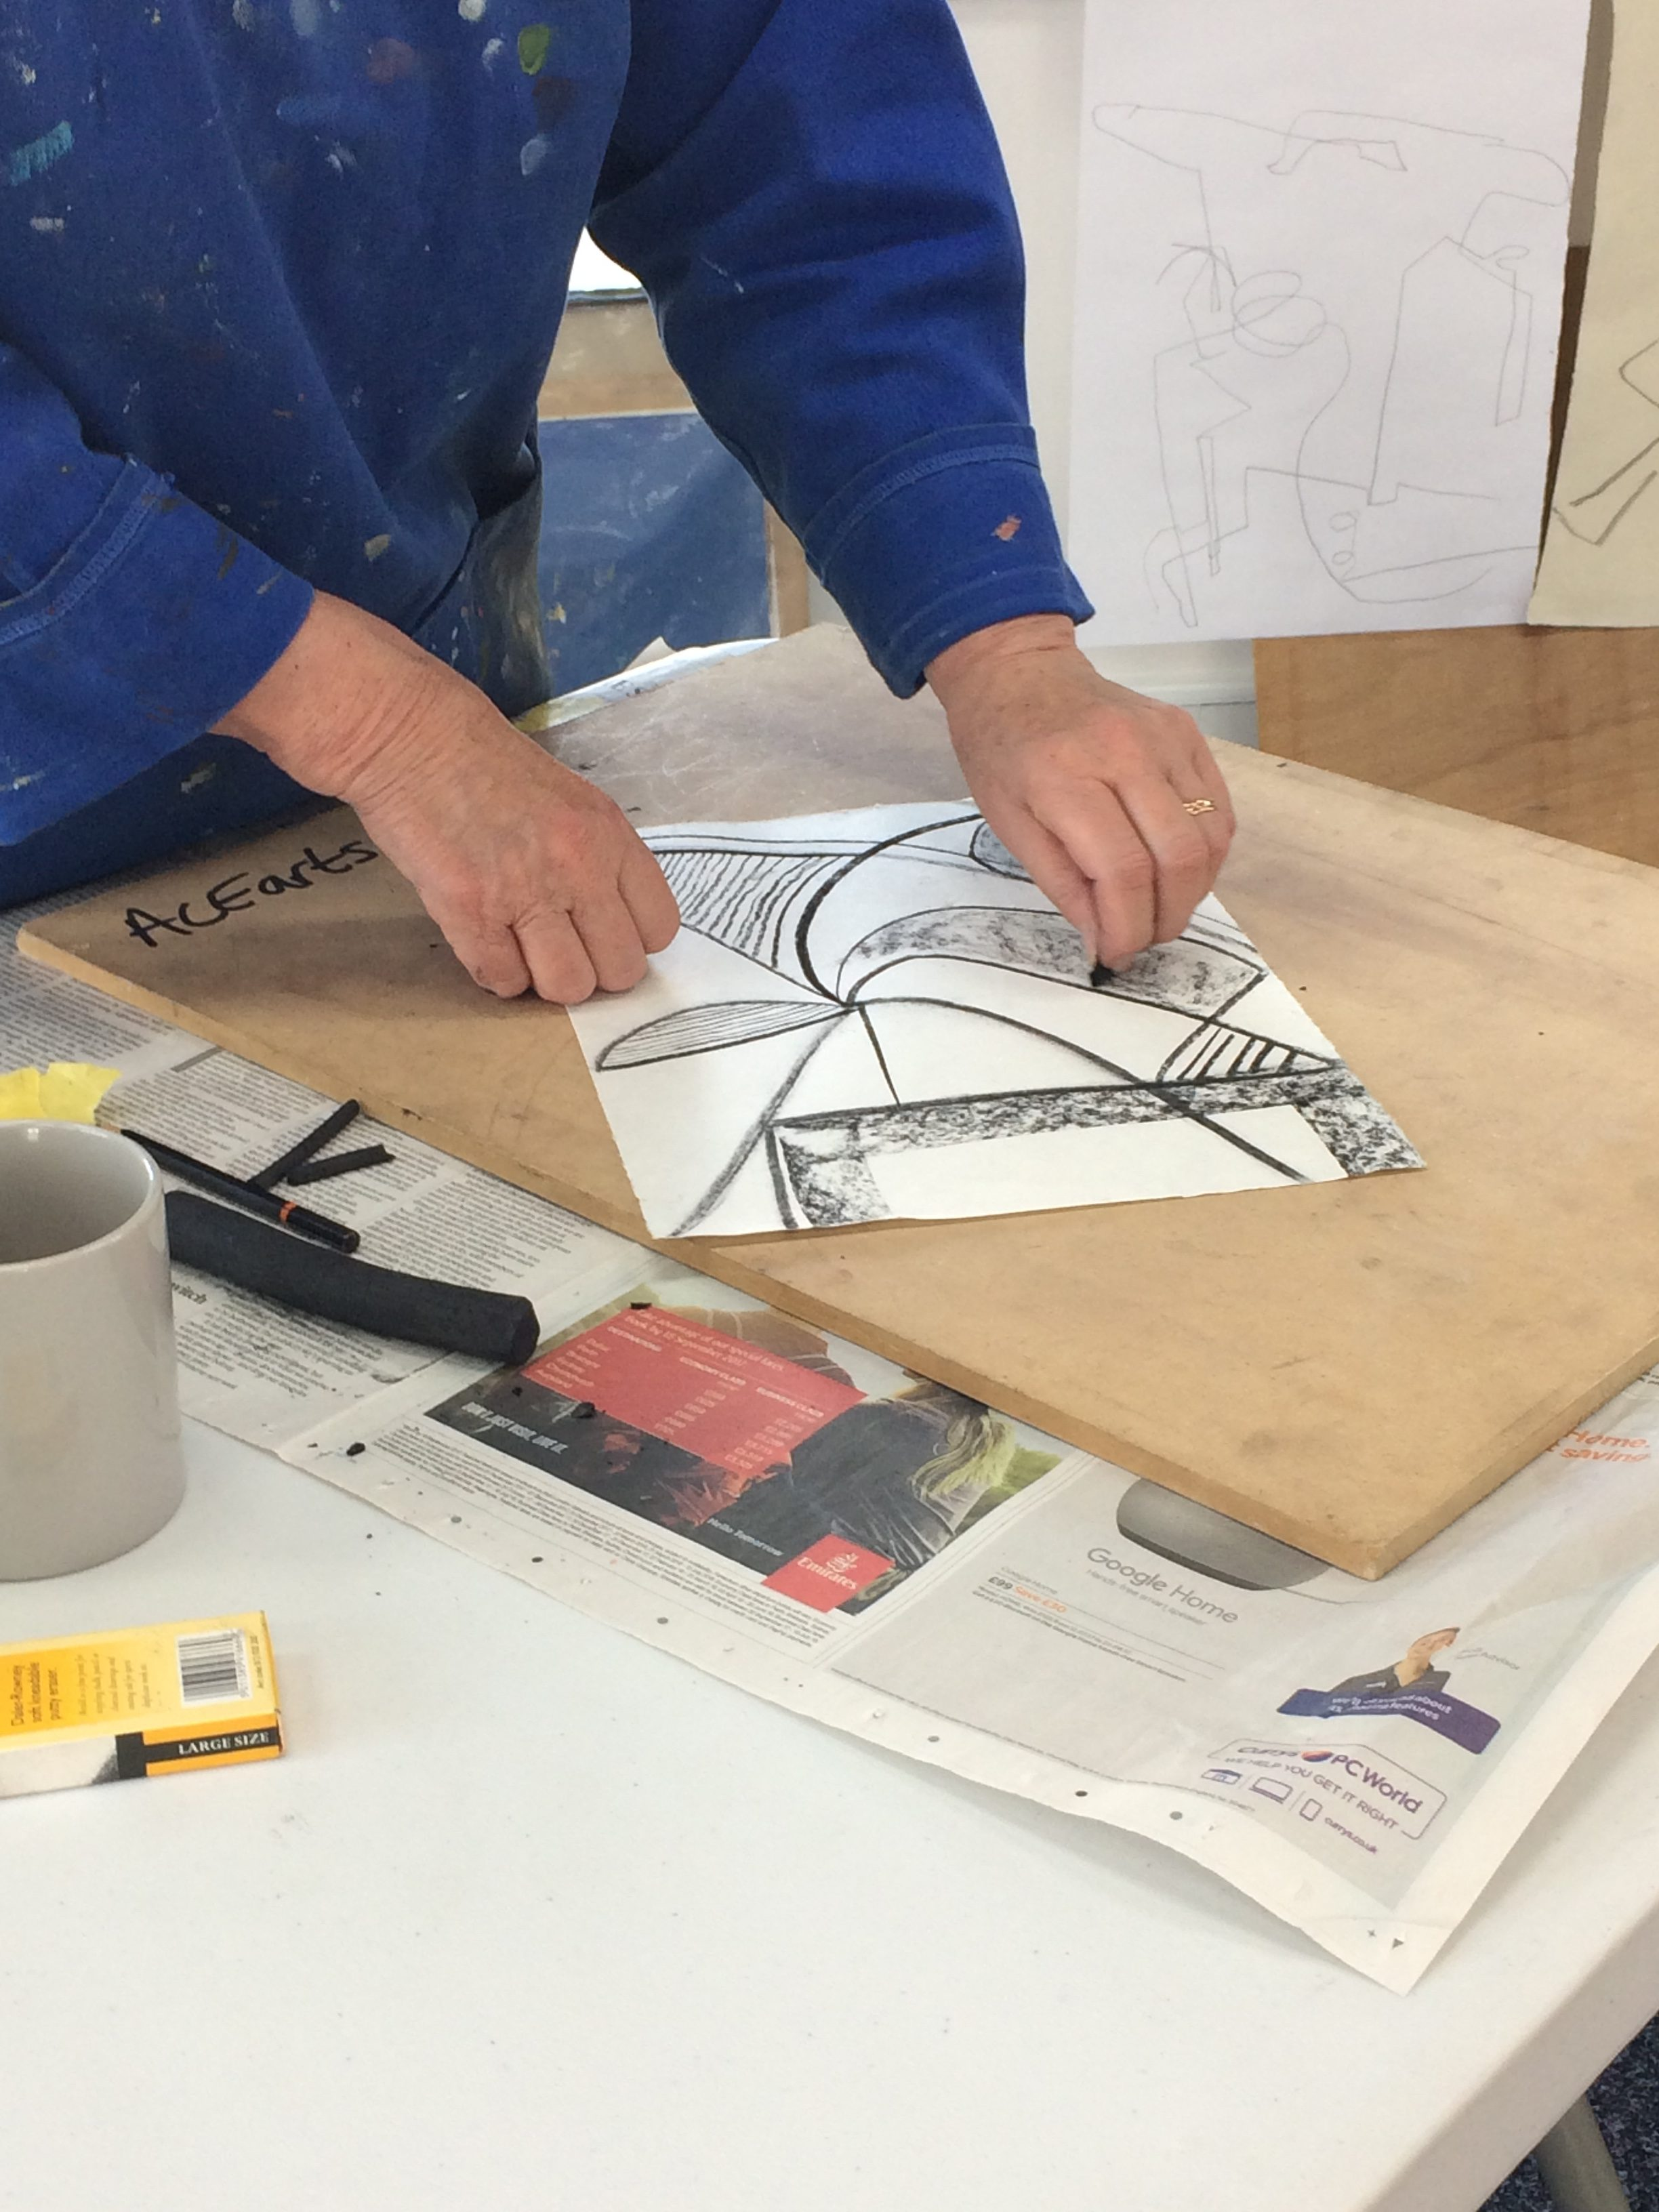 Participant of abstract drawing class